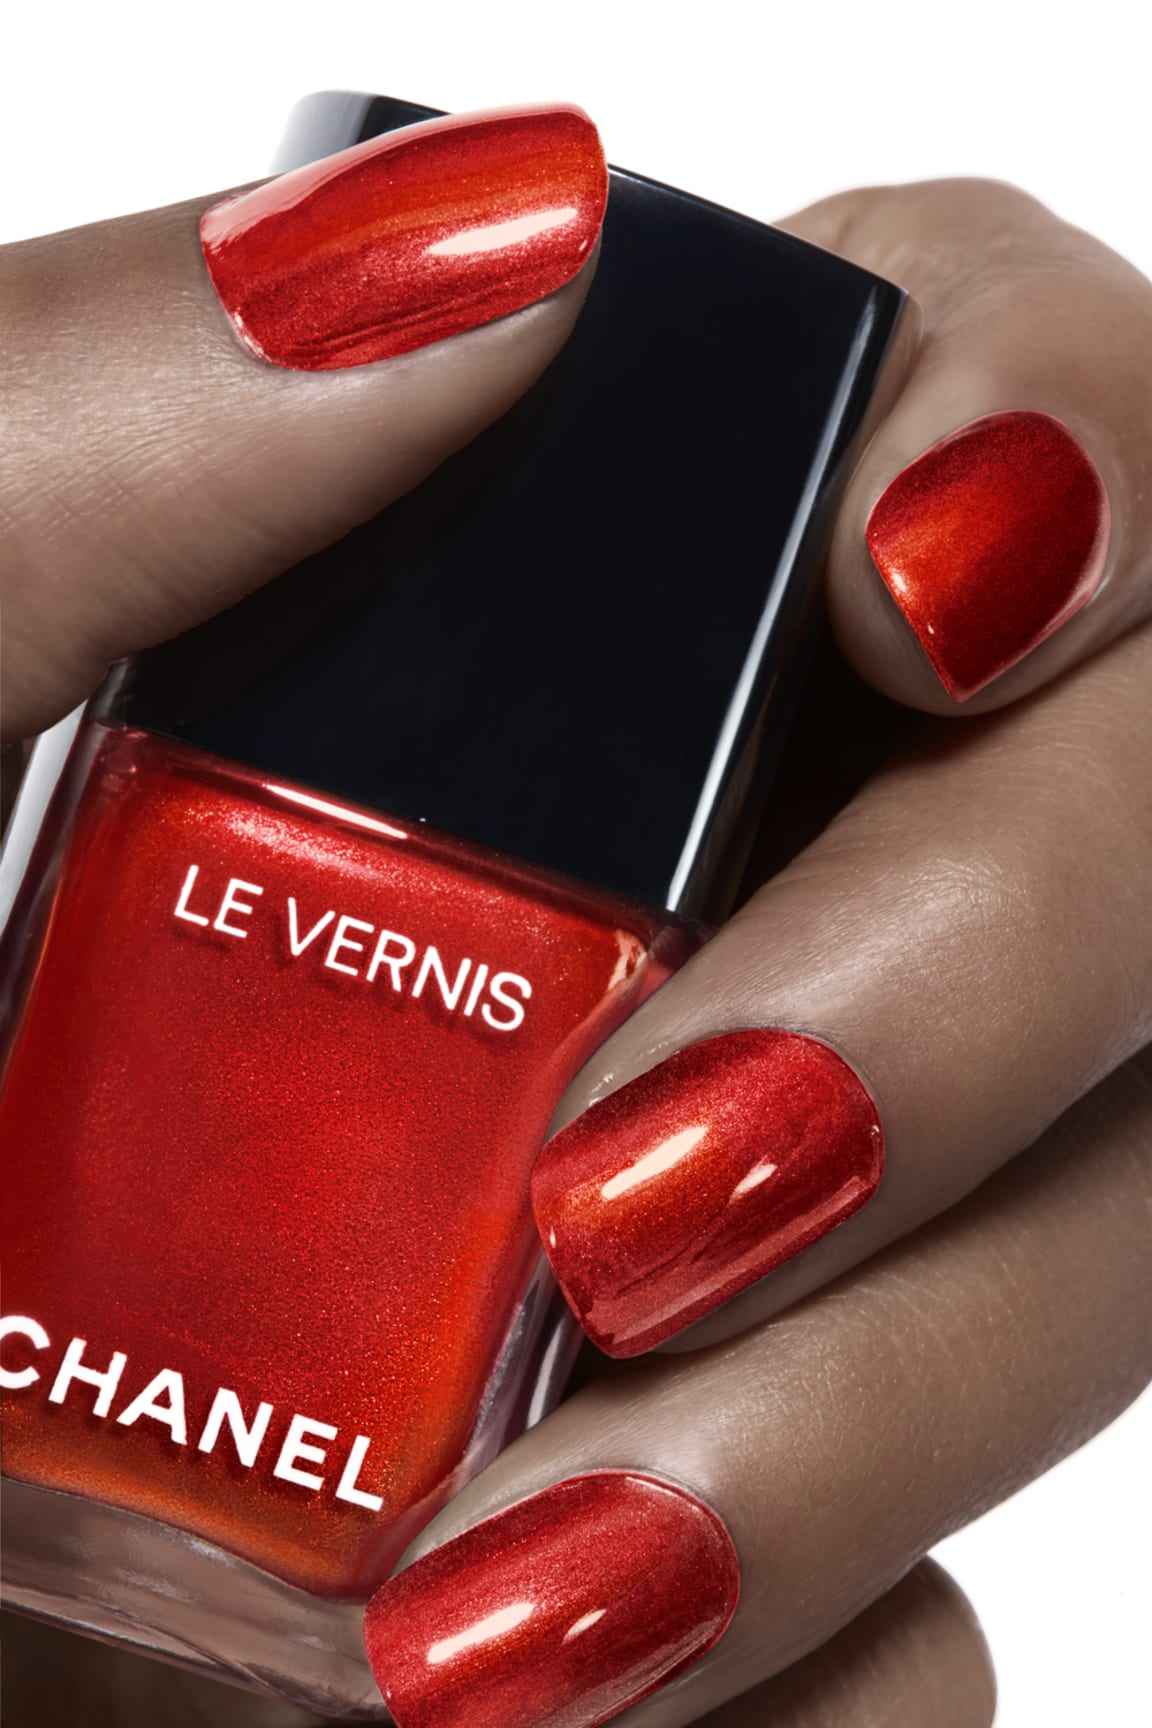 Application makeup visual 1 - LE VERNIS 887 - METALLIC BLOOM